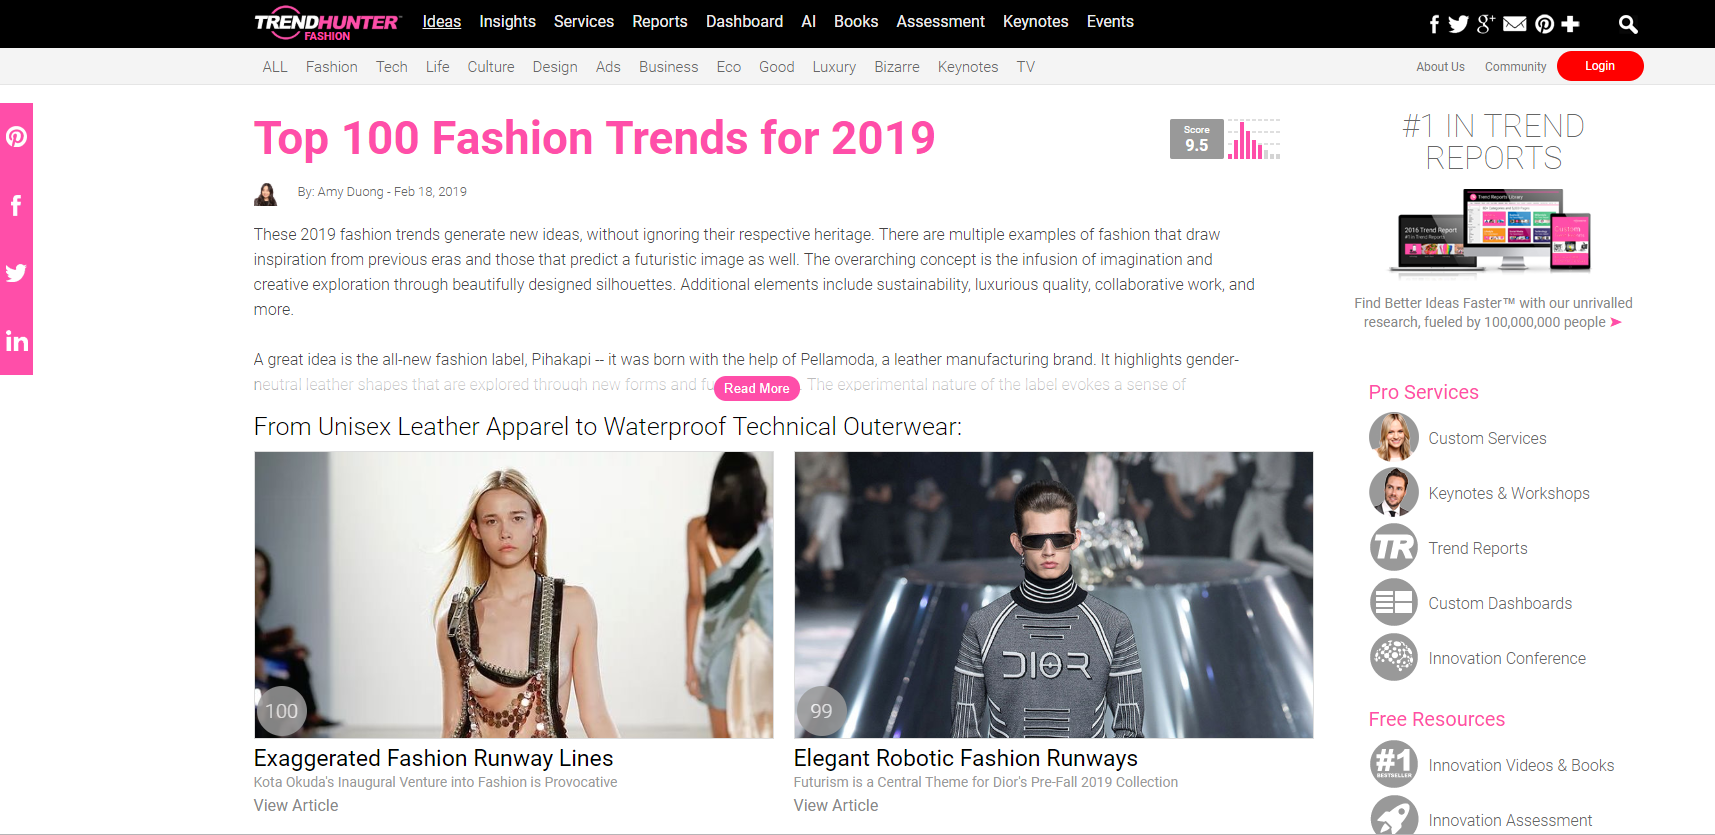 How To Start An Online Clothing Store In 2020 Step By Step Guide Dinarys